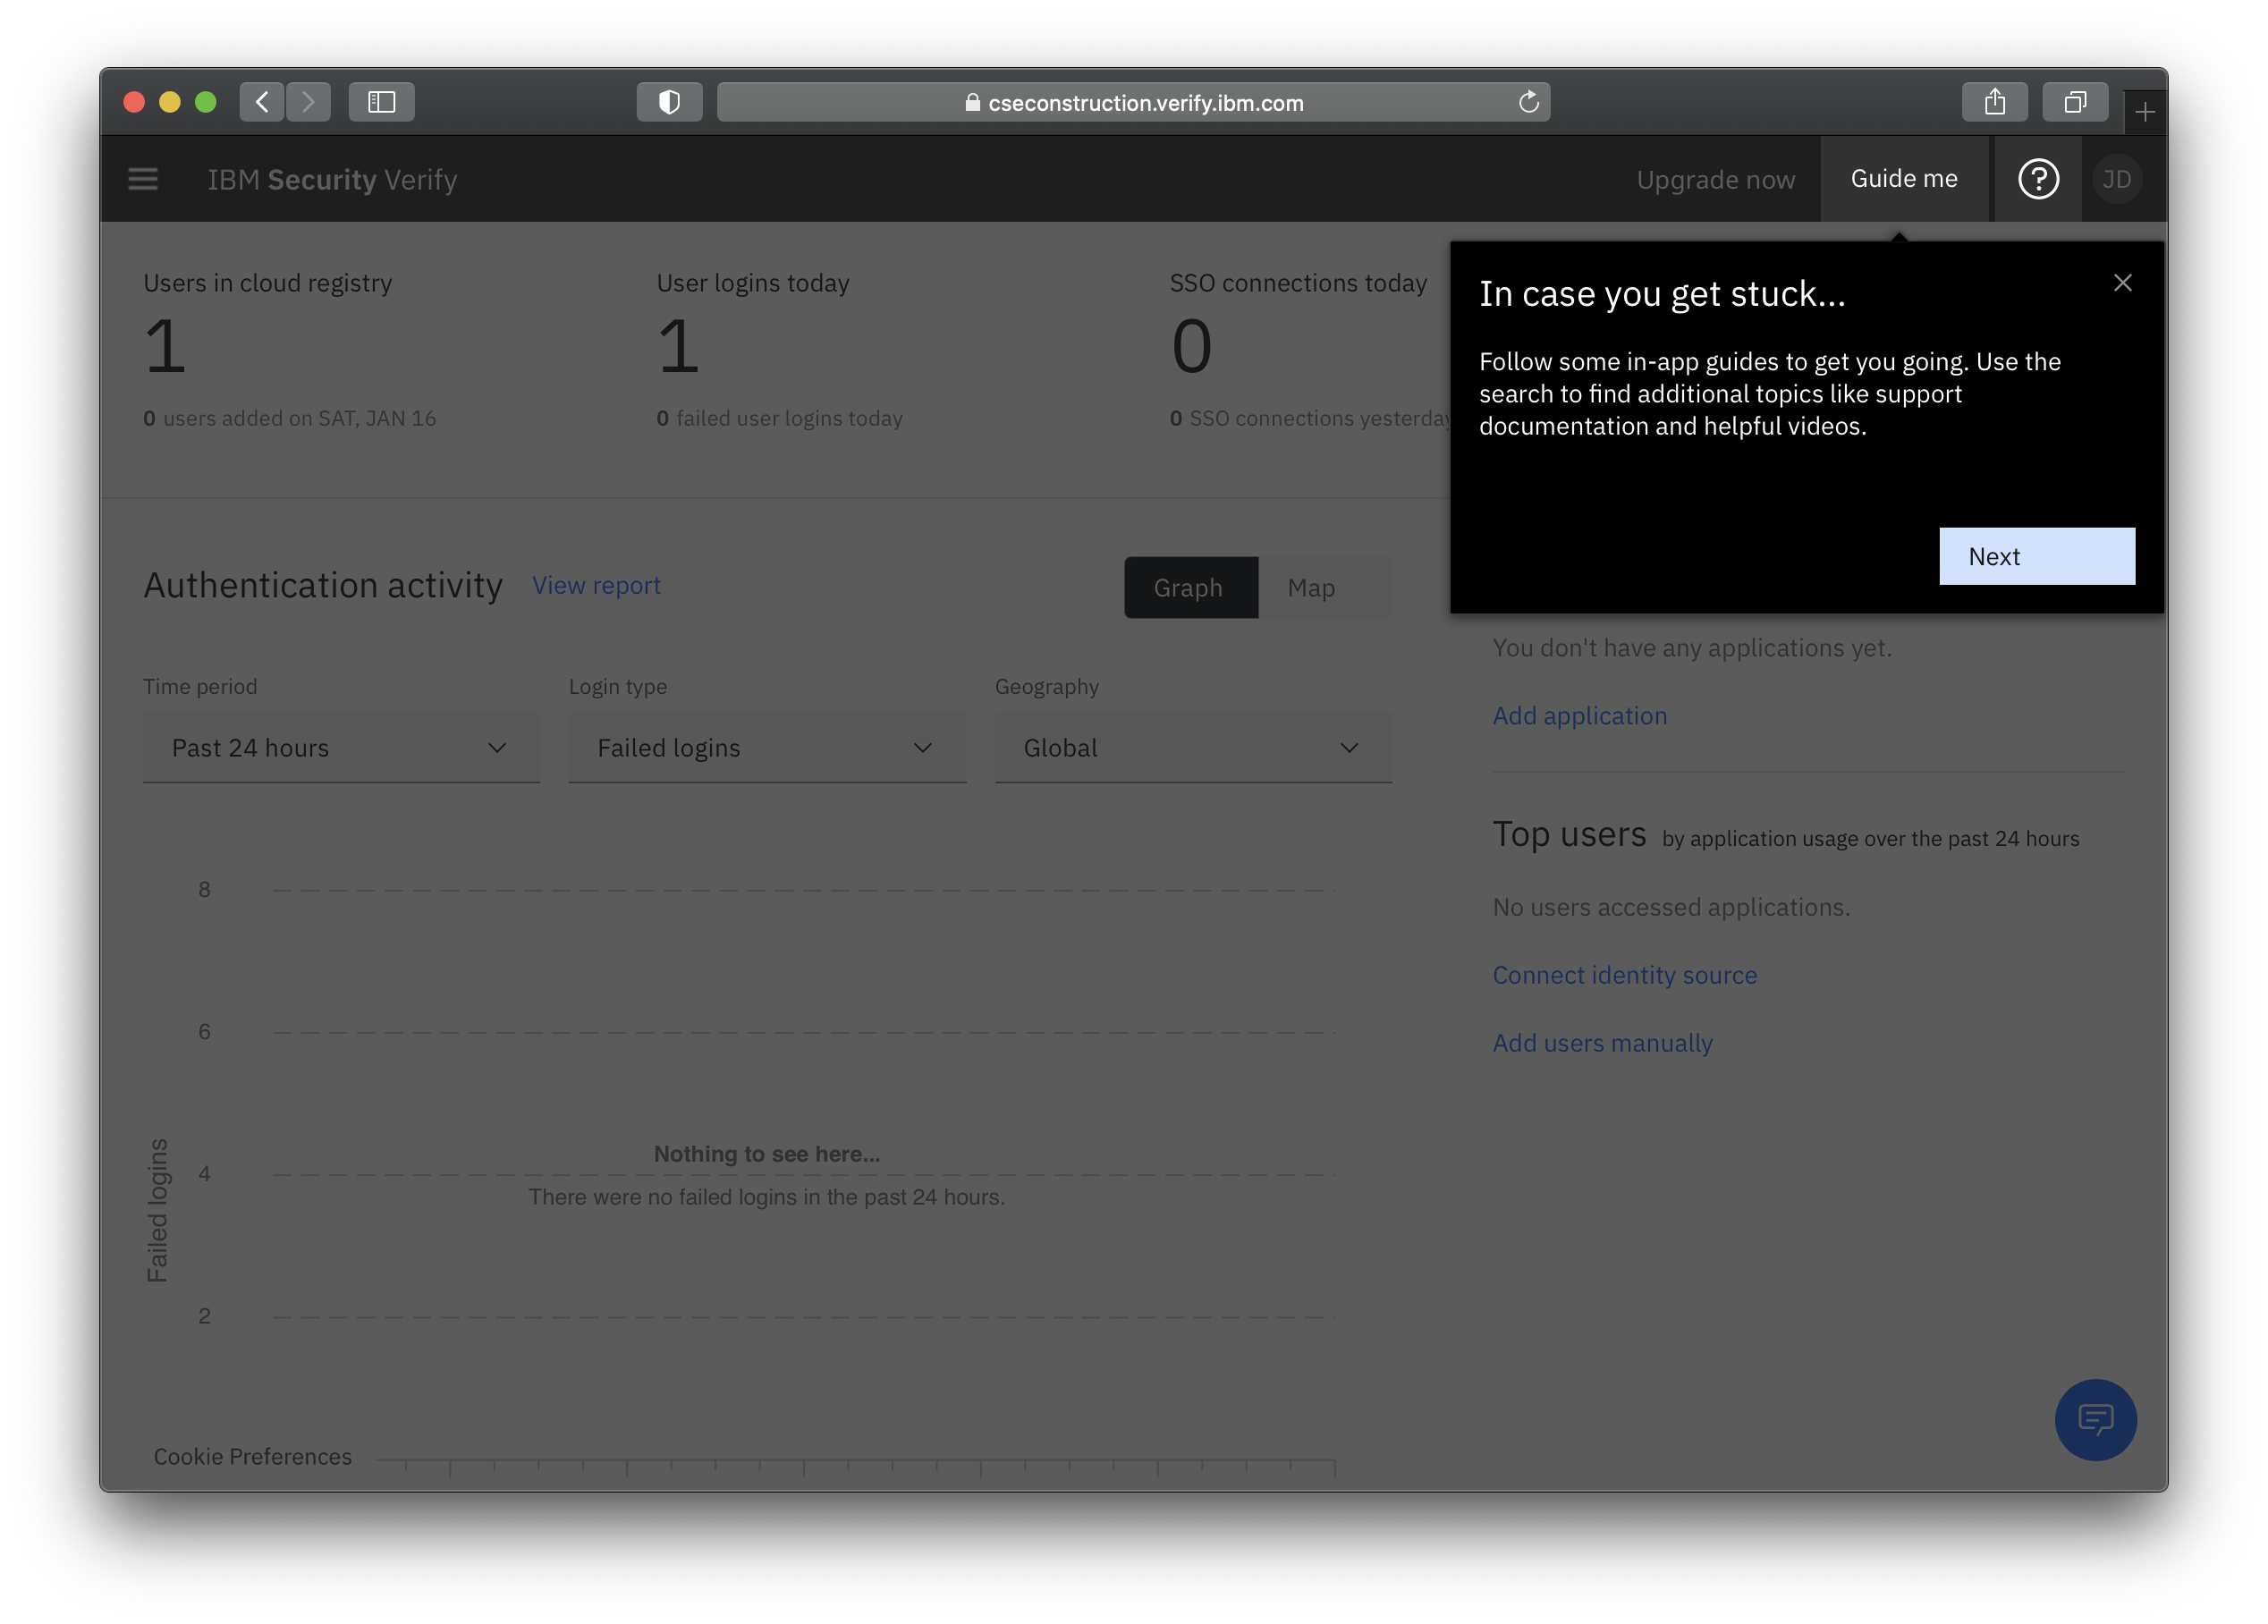 In-app guided tours for IBM Security Verify